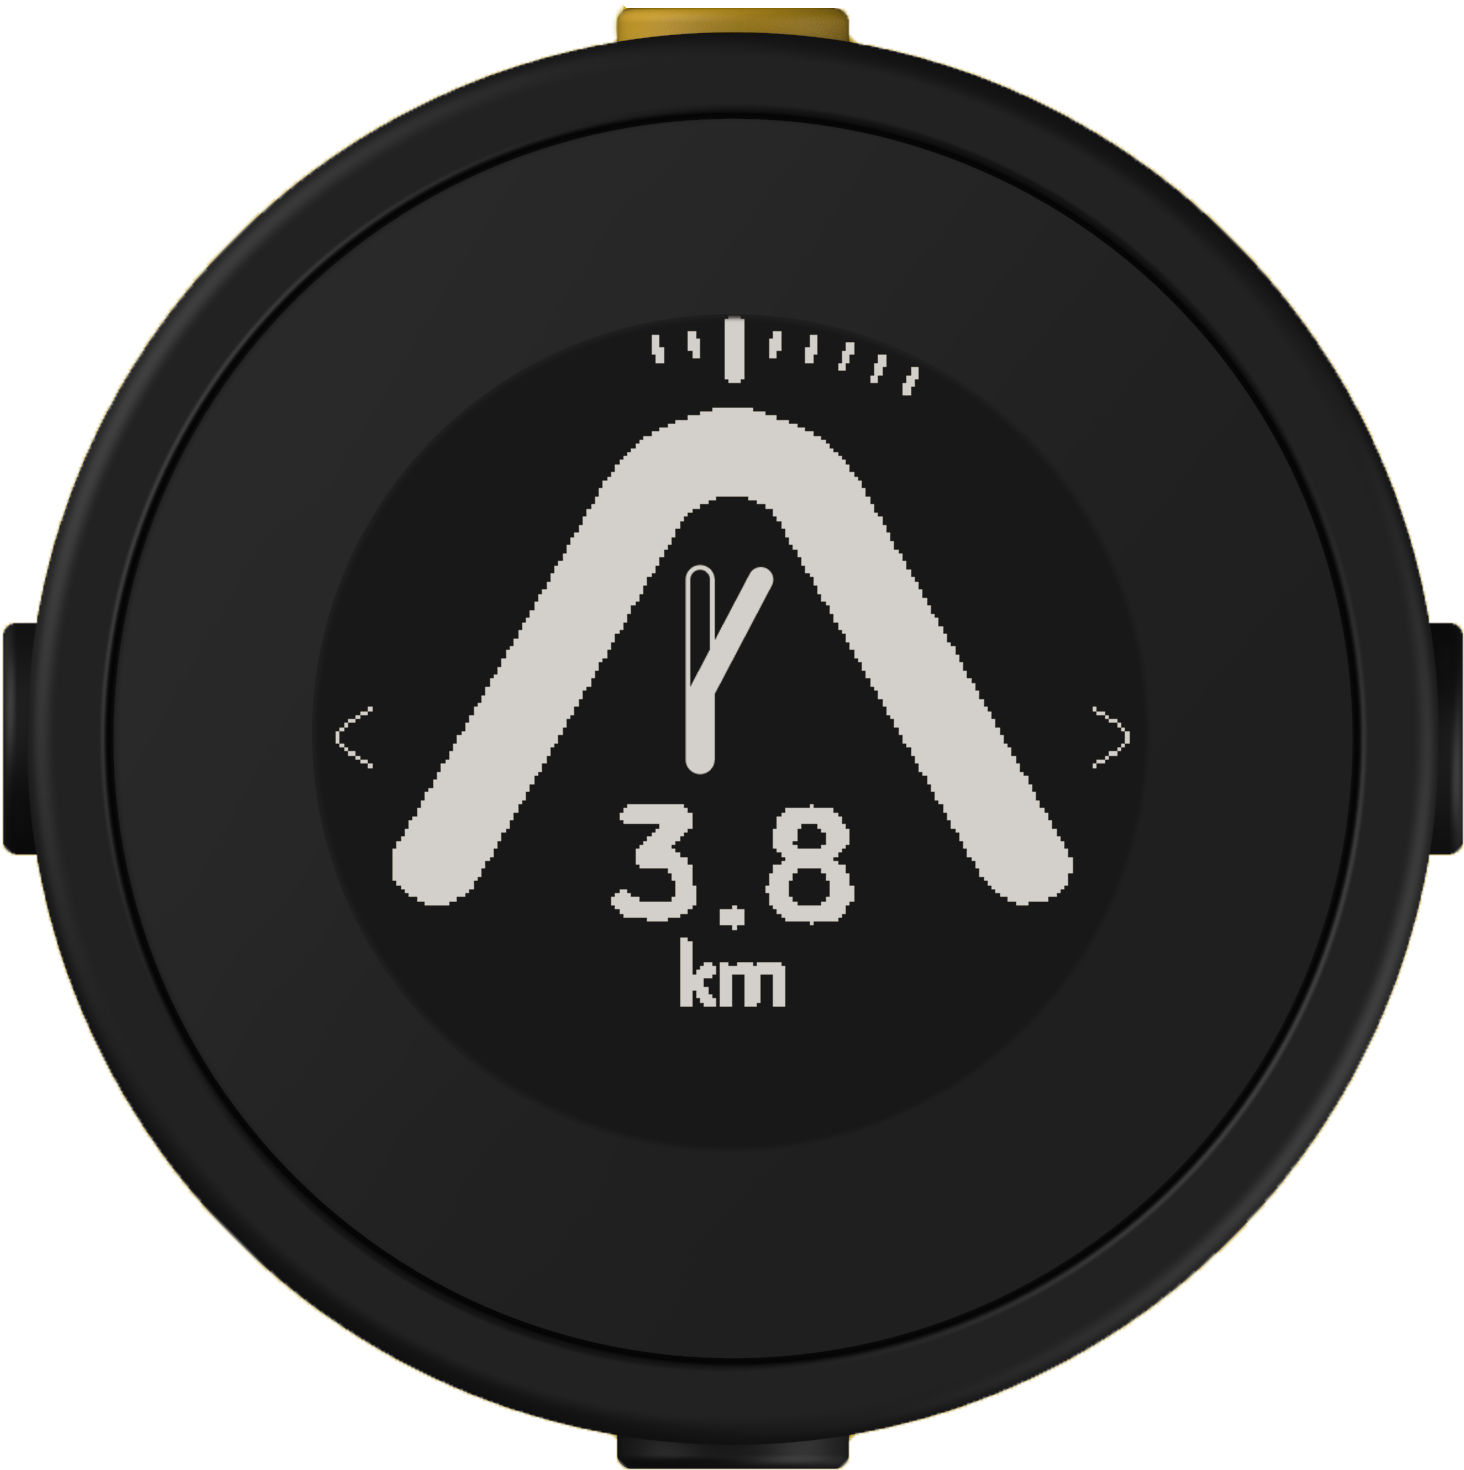 Beeline Moto with fork indicator showing to take the right turn in 3.8km